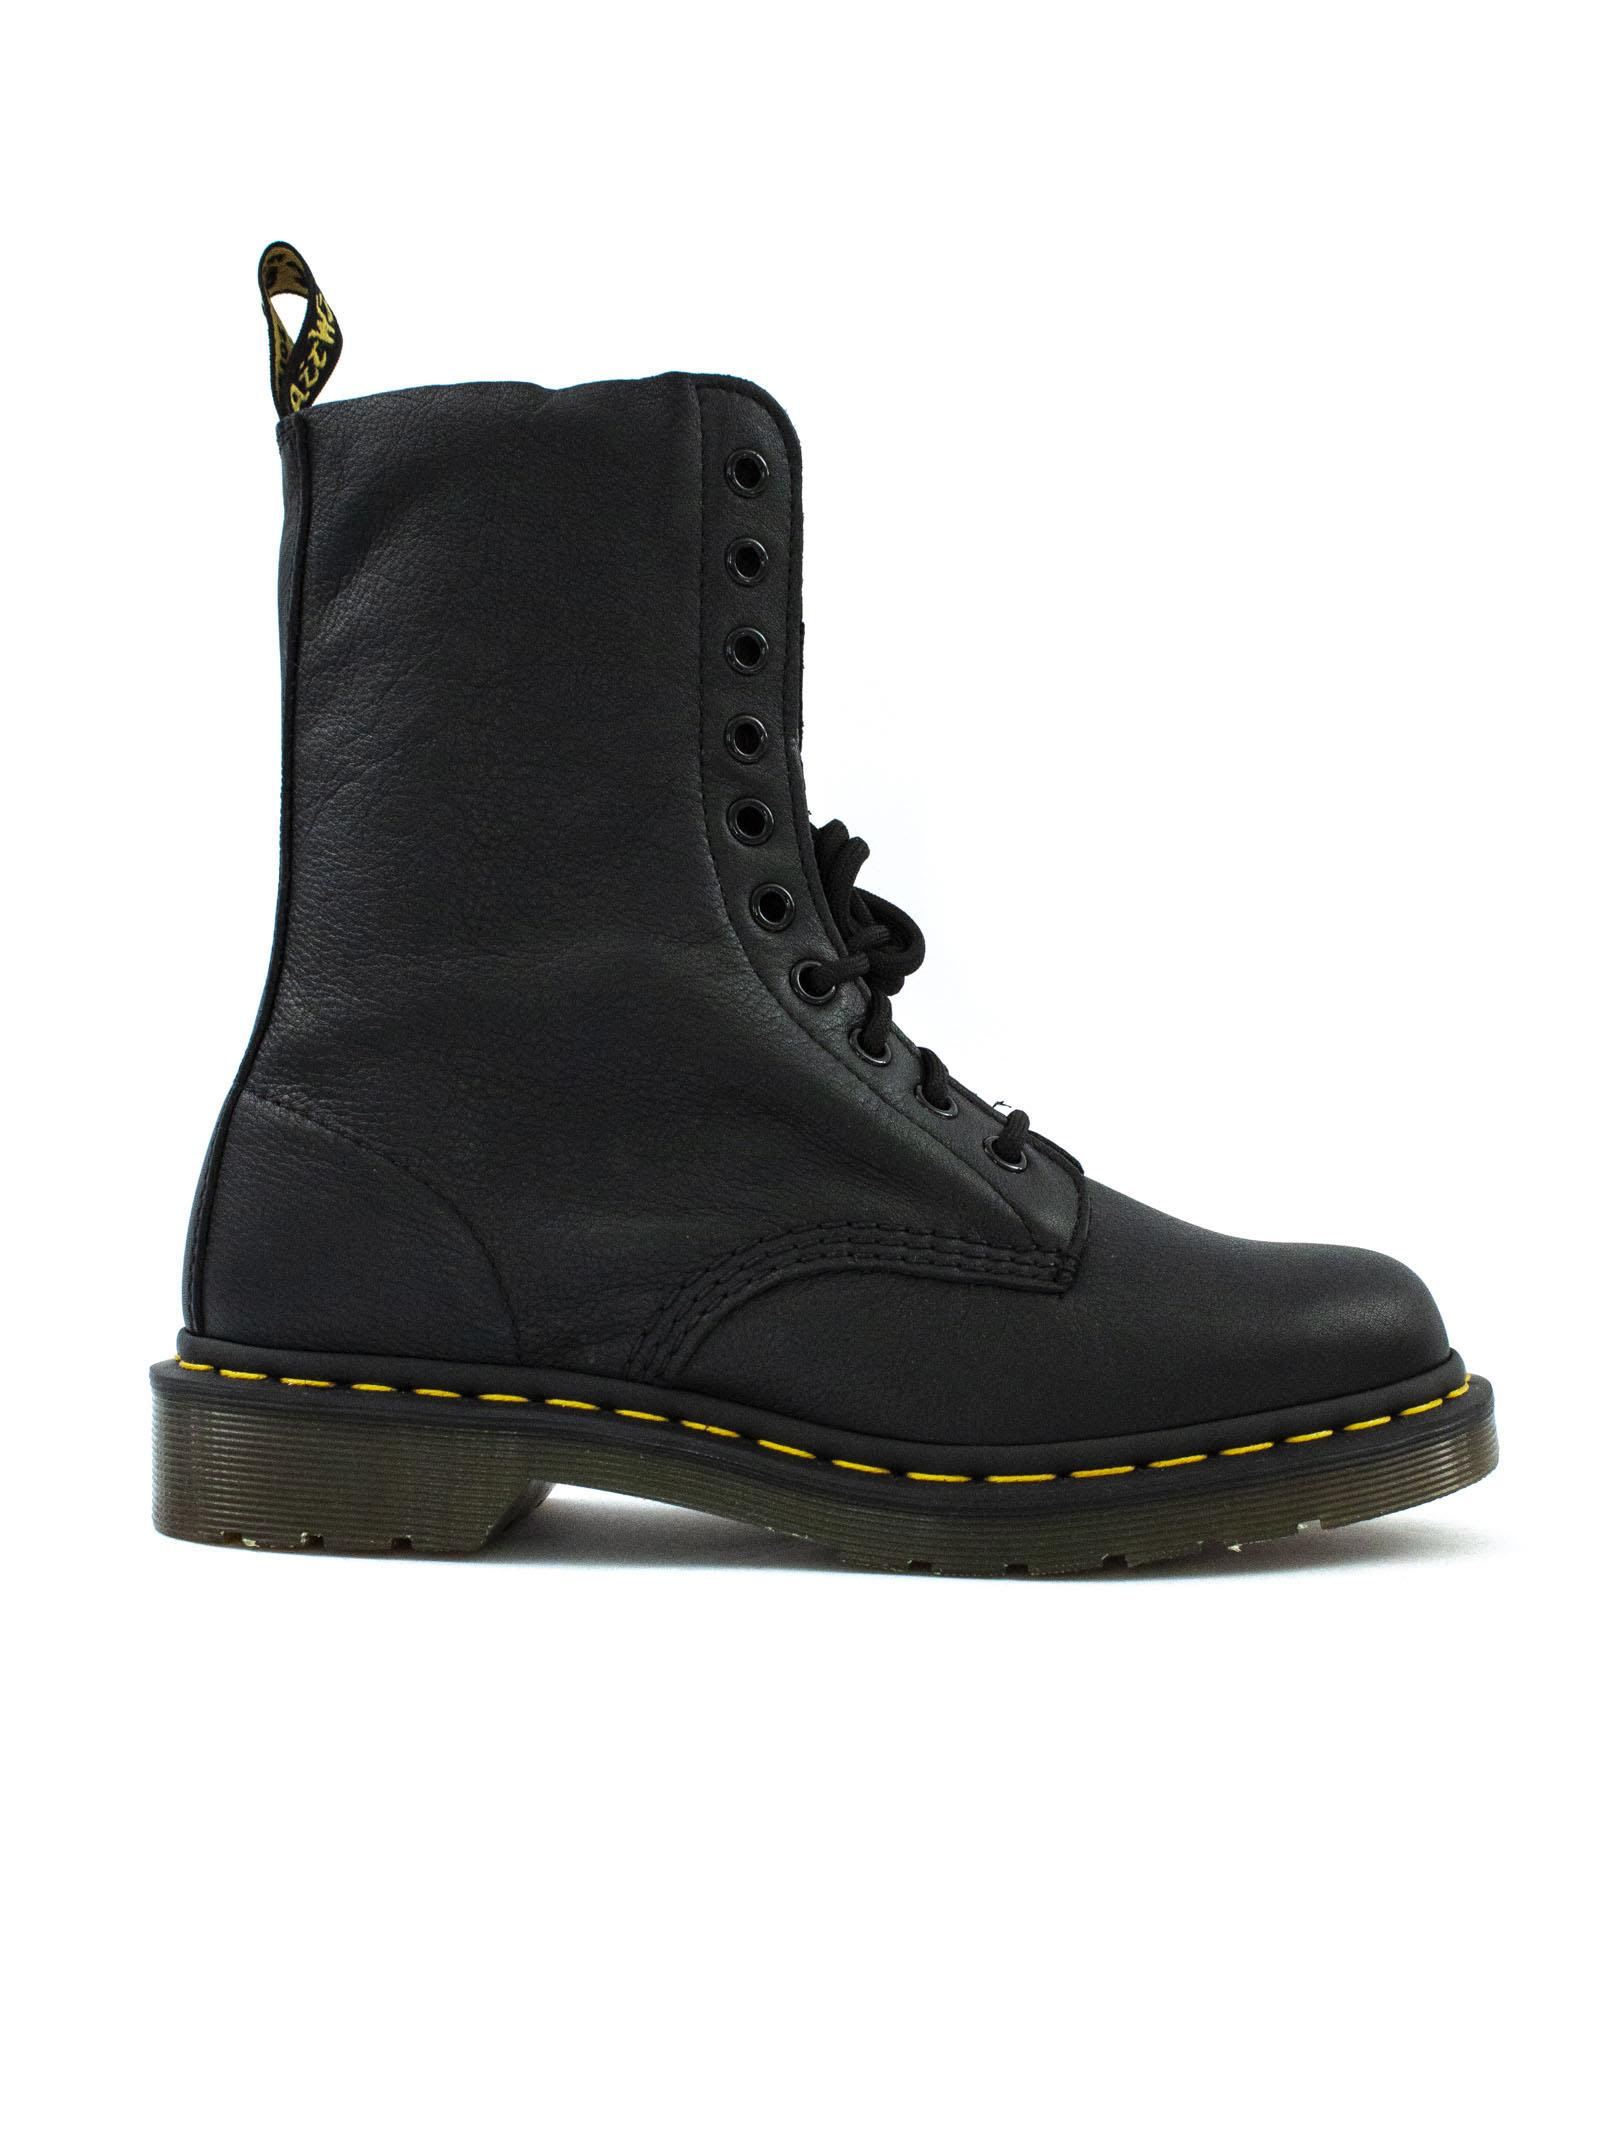 dr. martens -  Black Grained Leather Boots.